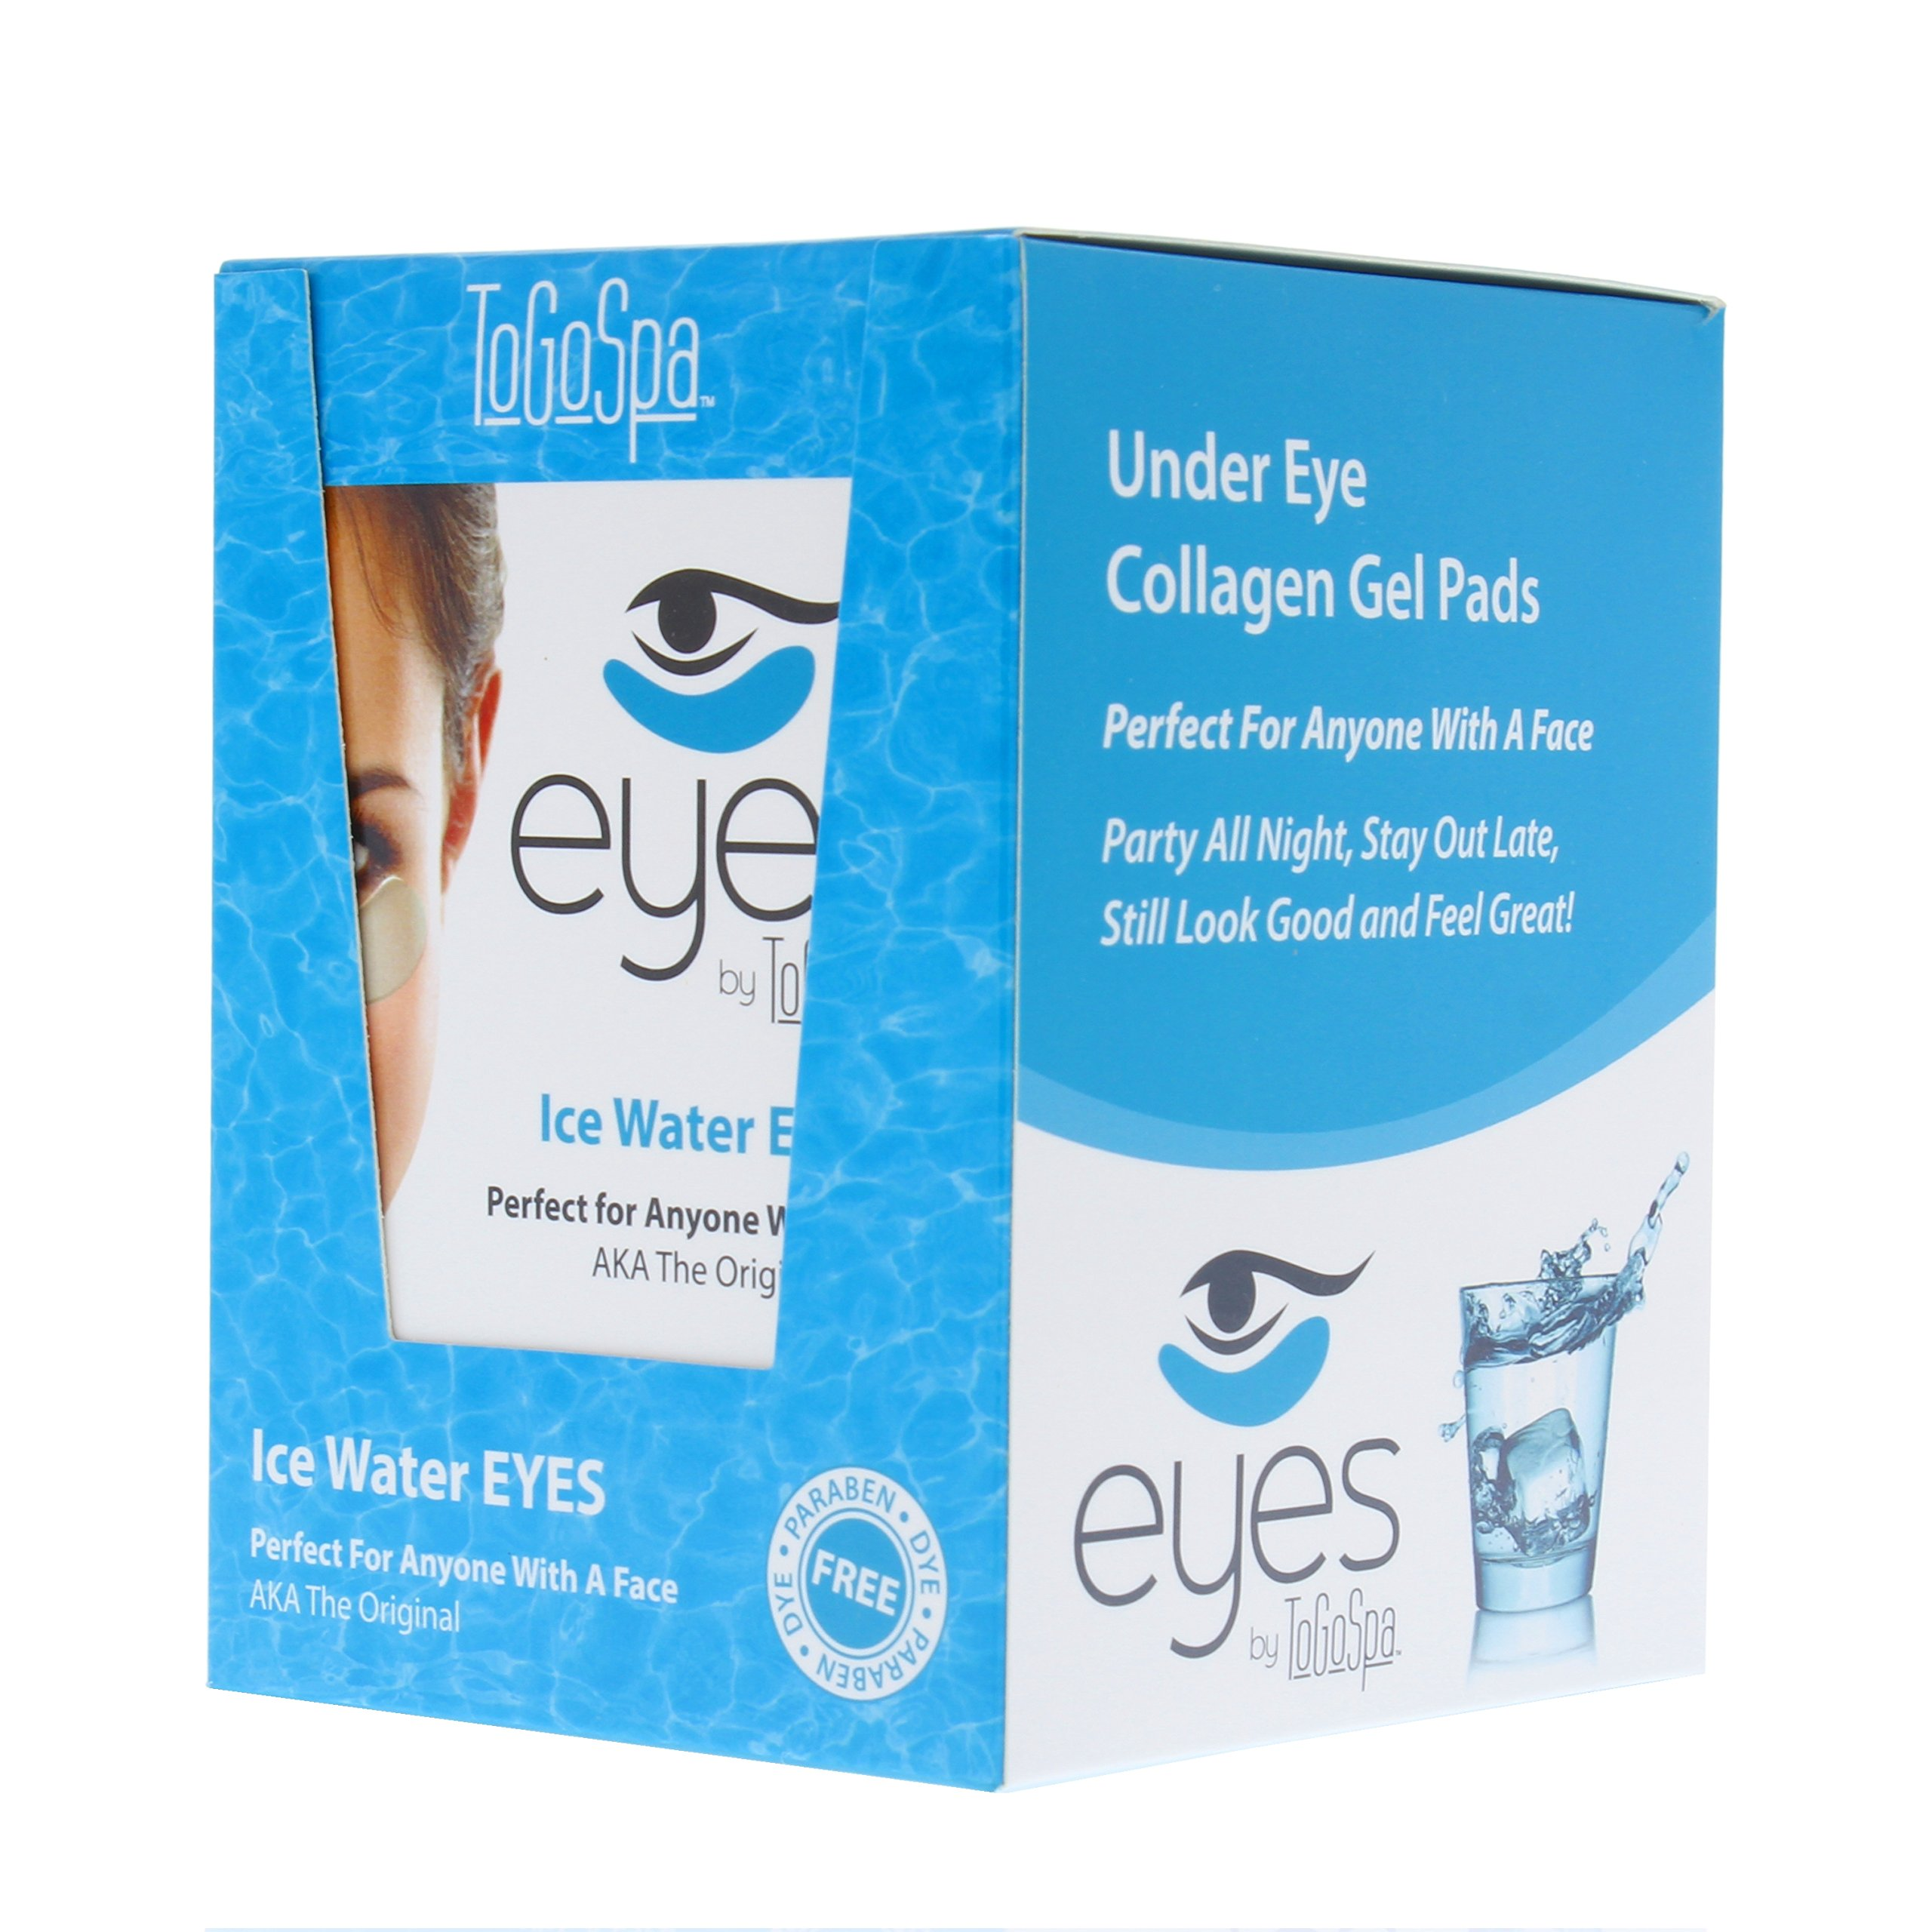 Ice Water EYES by ToGoSpa - Premium Anti-Aging Collagen Gel Pads for Puffiness, Dark Circles, and Wrinkles - Under Eye Rejuvenation for Men & Women - 10 Pack - 30 Pairs